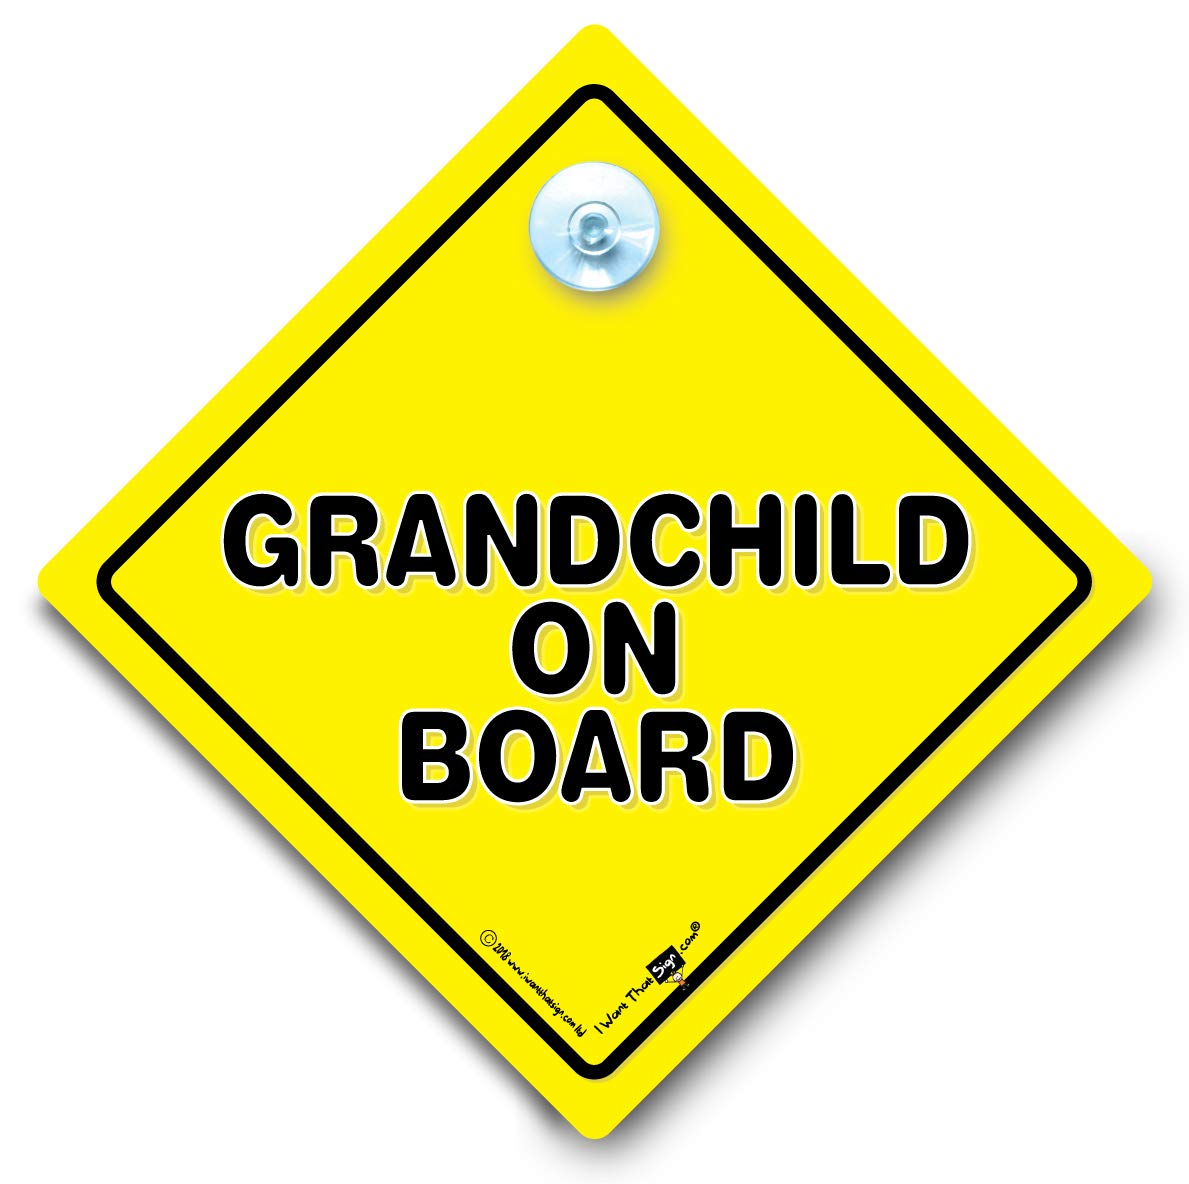 Grandchild On Board Car Sign, Baby on Board Sign, Yellow and Black Car Sign, Suction Cup Vehicle Window Sign